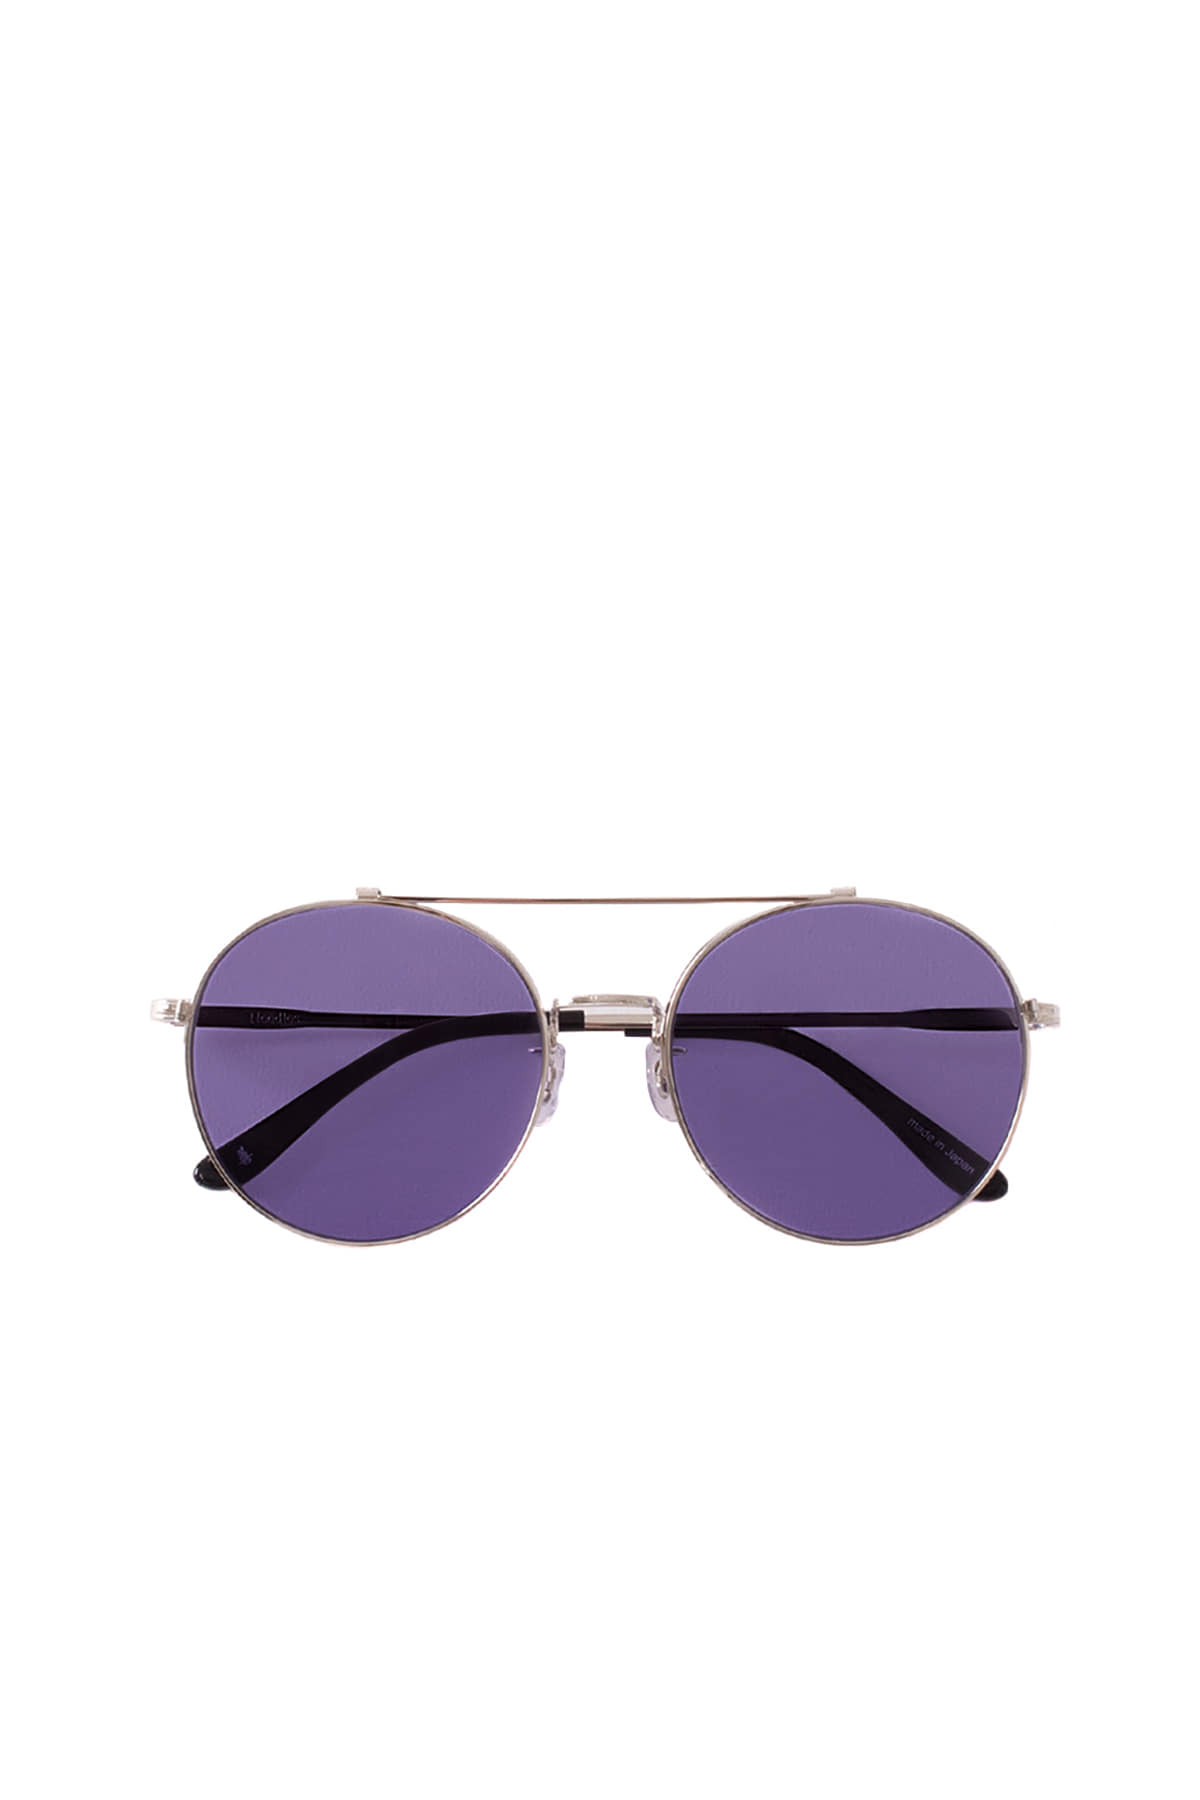 NEEDLES : Sean Sunglass (Silver / Purple)